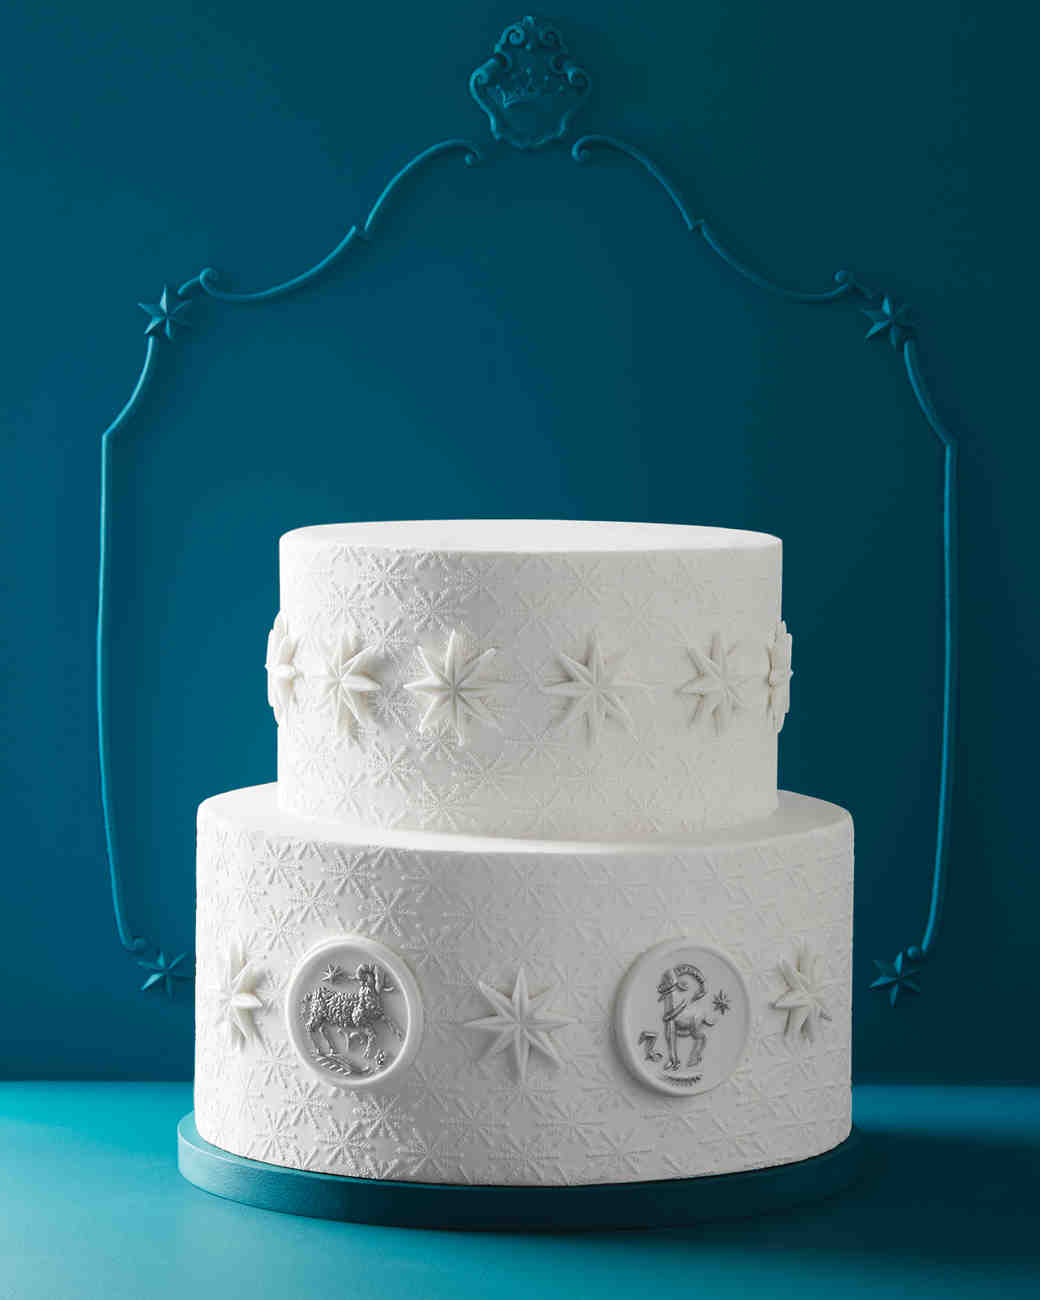 winter-wedding-cake-0318-d112493-comp.jpg